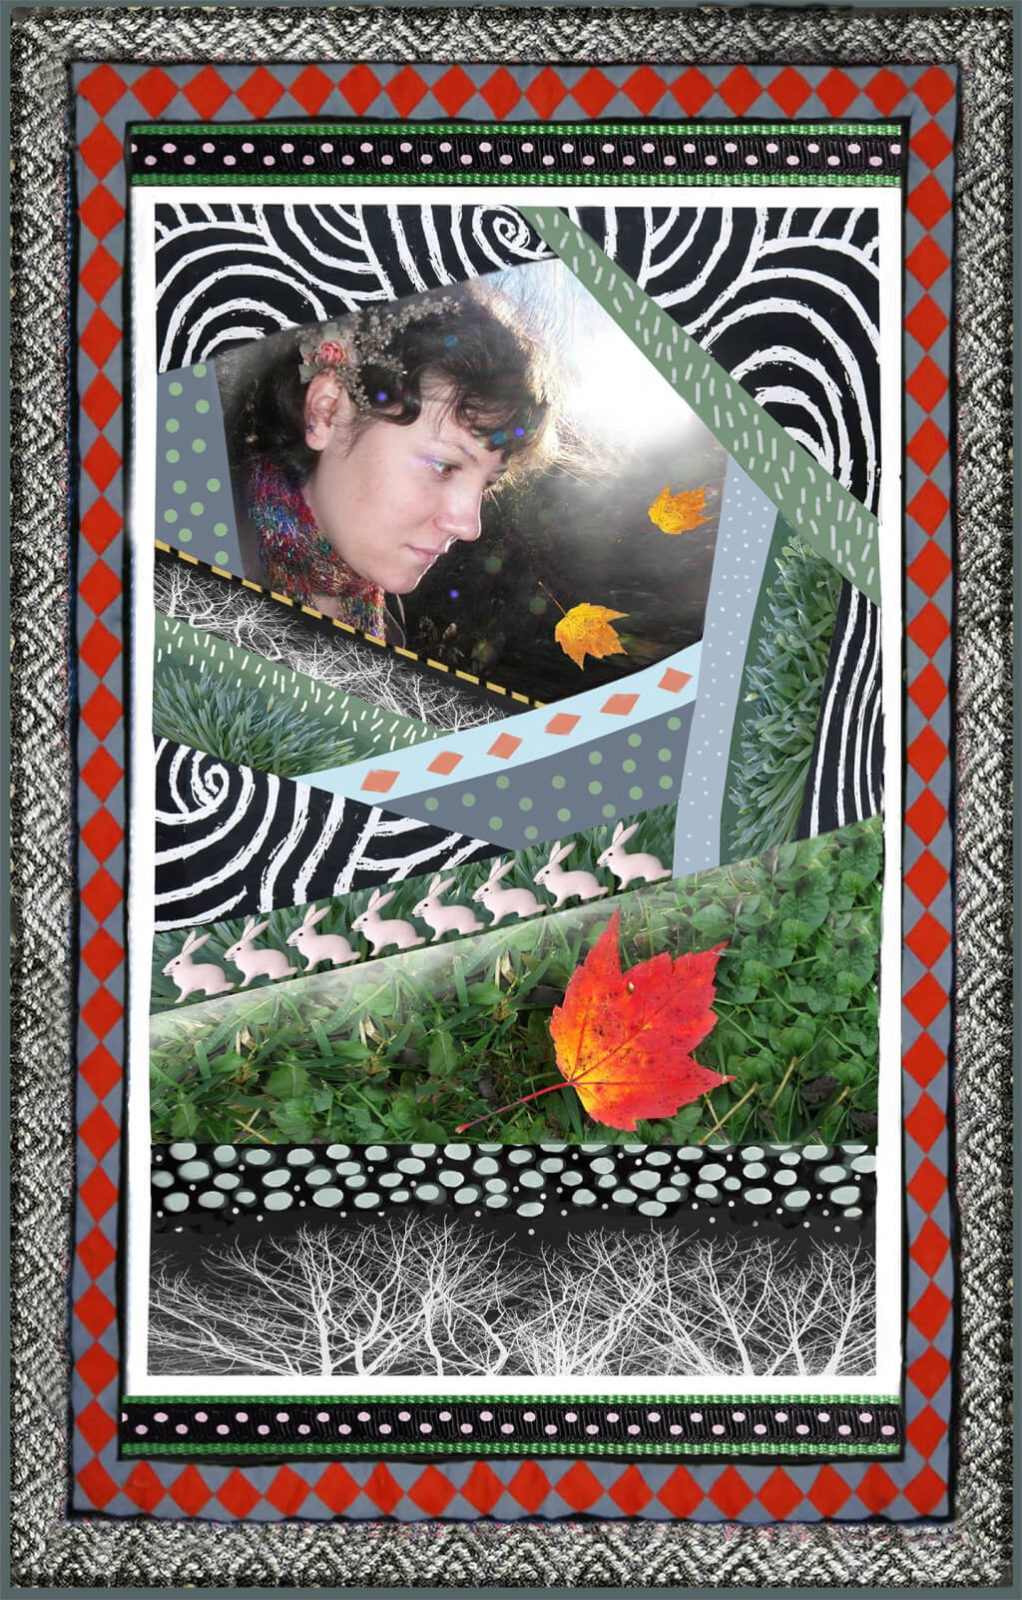 Robin Botie of Ithaca, New York, photoshops her daughter Marika Warden who died of leukemia into a montage of layers and decorative borders.